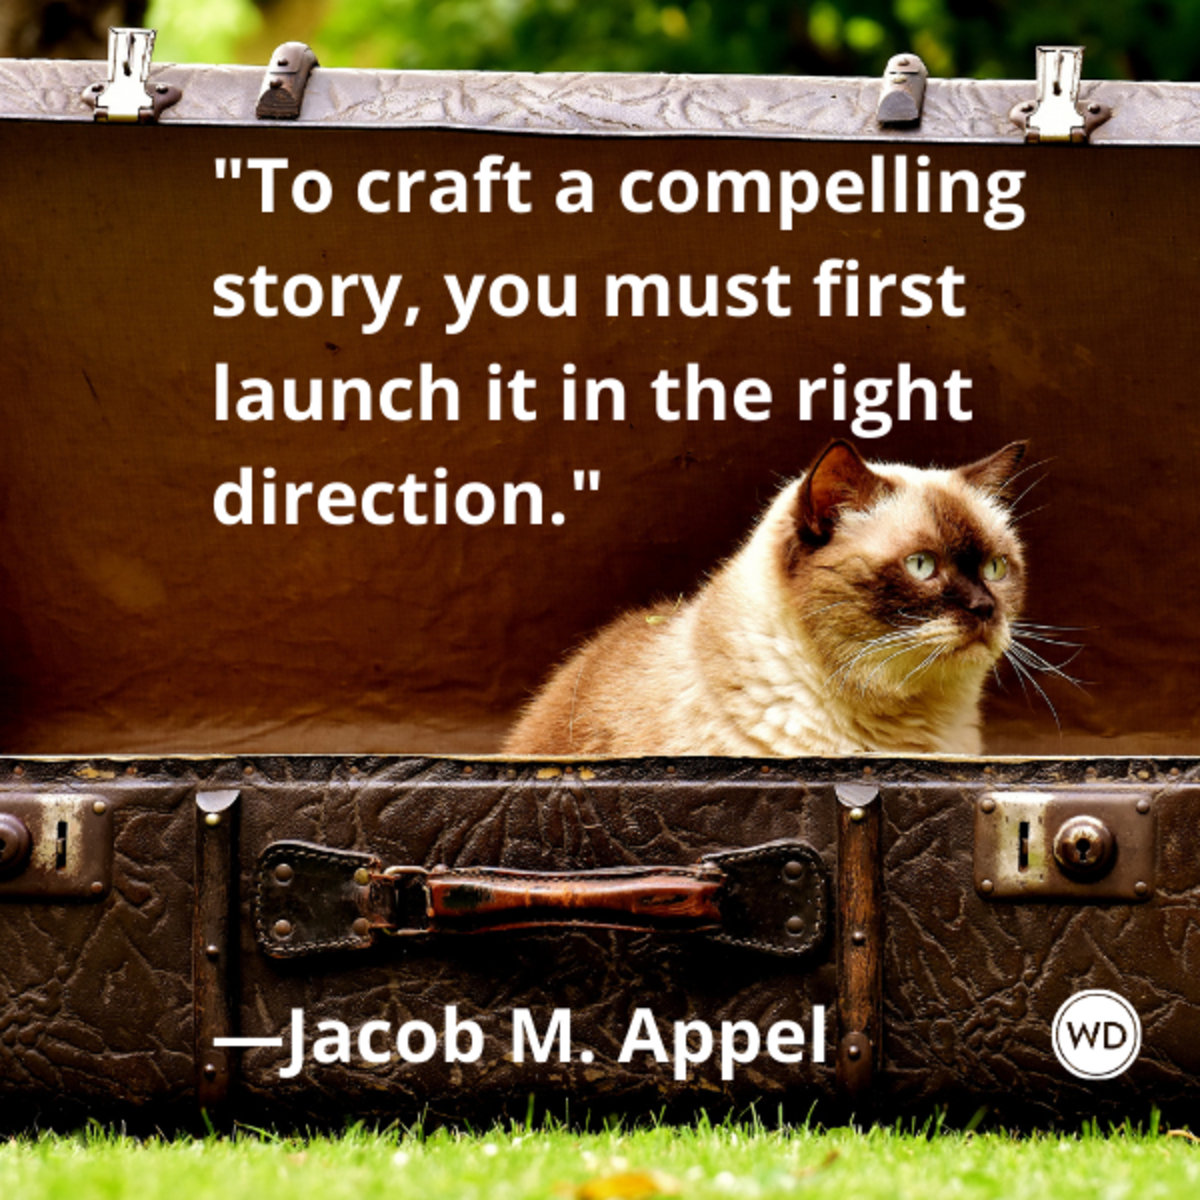 jacob_m_appel_quotes_to_craft_a_compelling_story_you_must_first_launch_it_in_the_right_direction